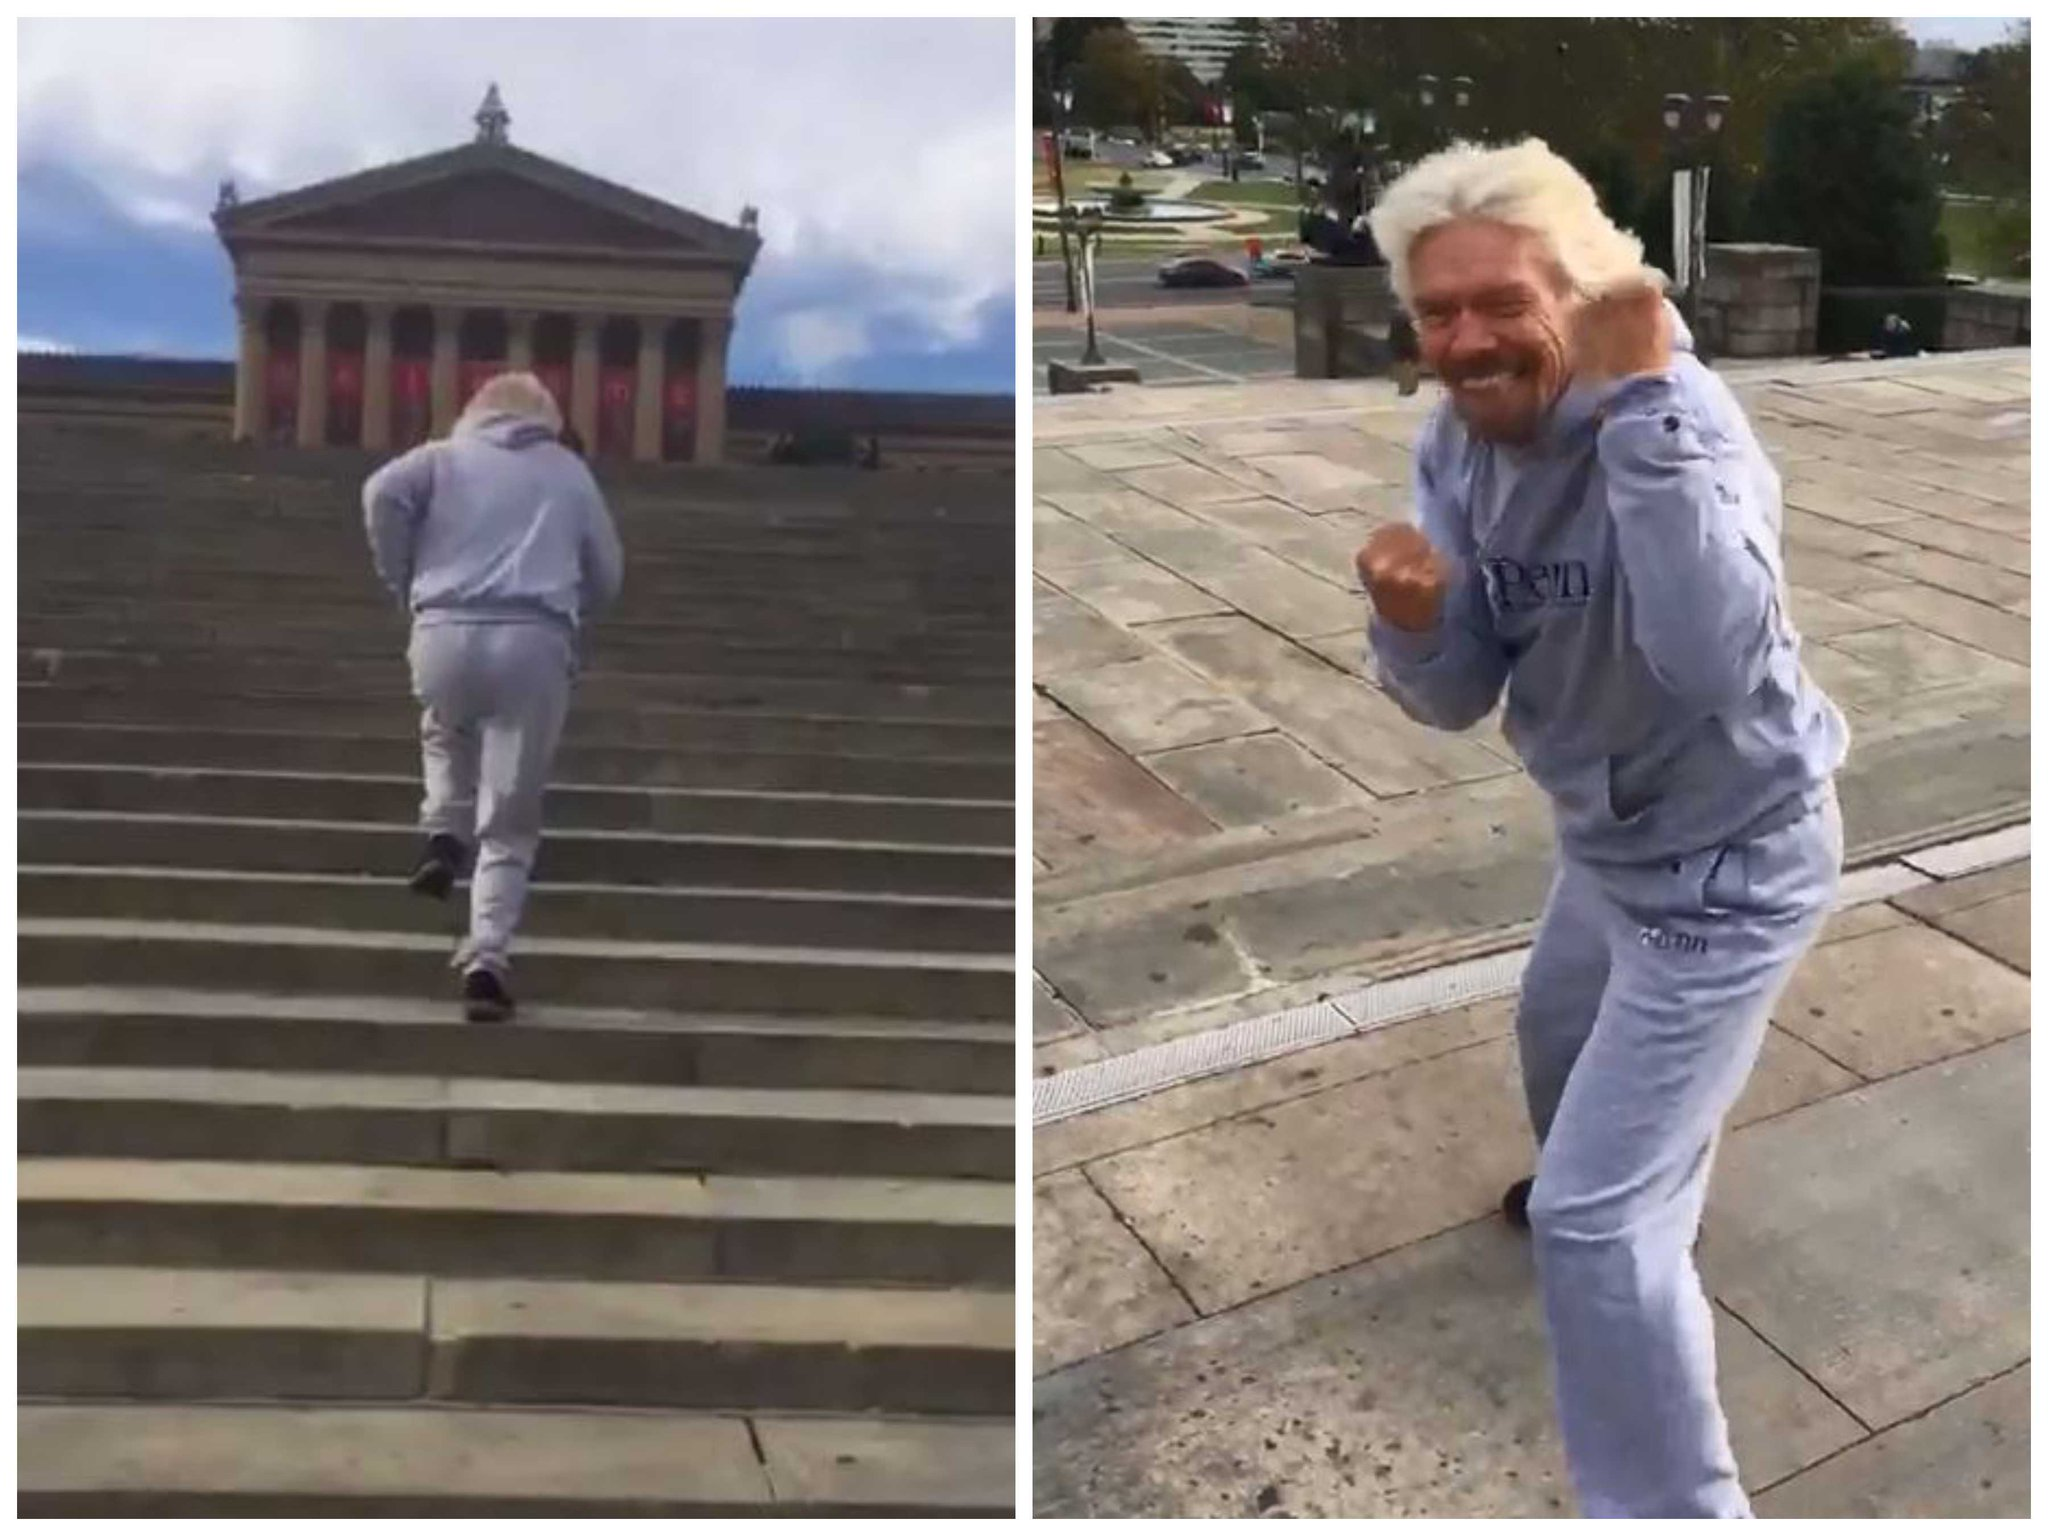 When in Philadelphia… https://t.co/EFWUKWHz6i #Rocky #FindingMyVirginity https://t.co/yJHLynBUCI